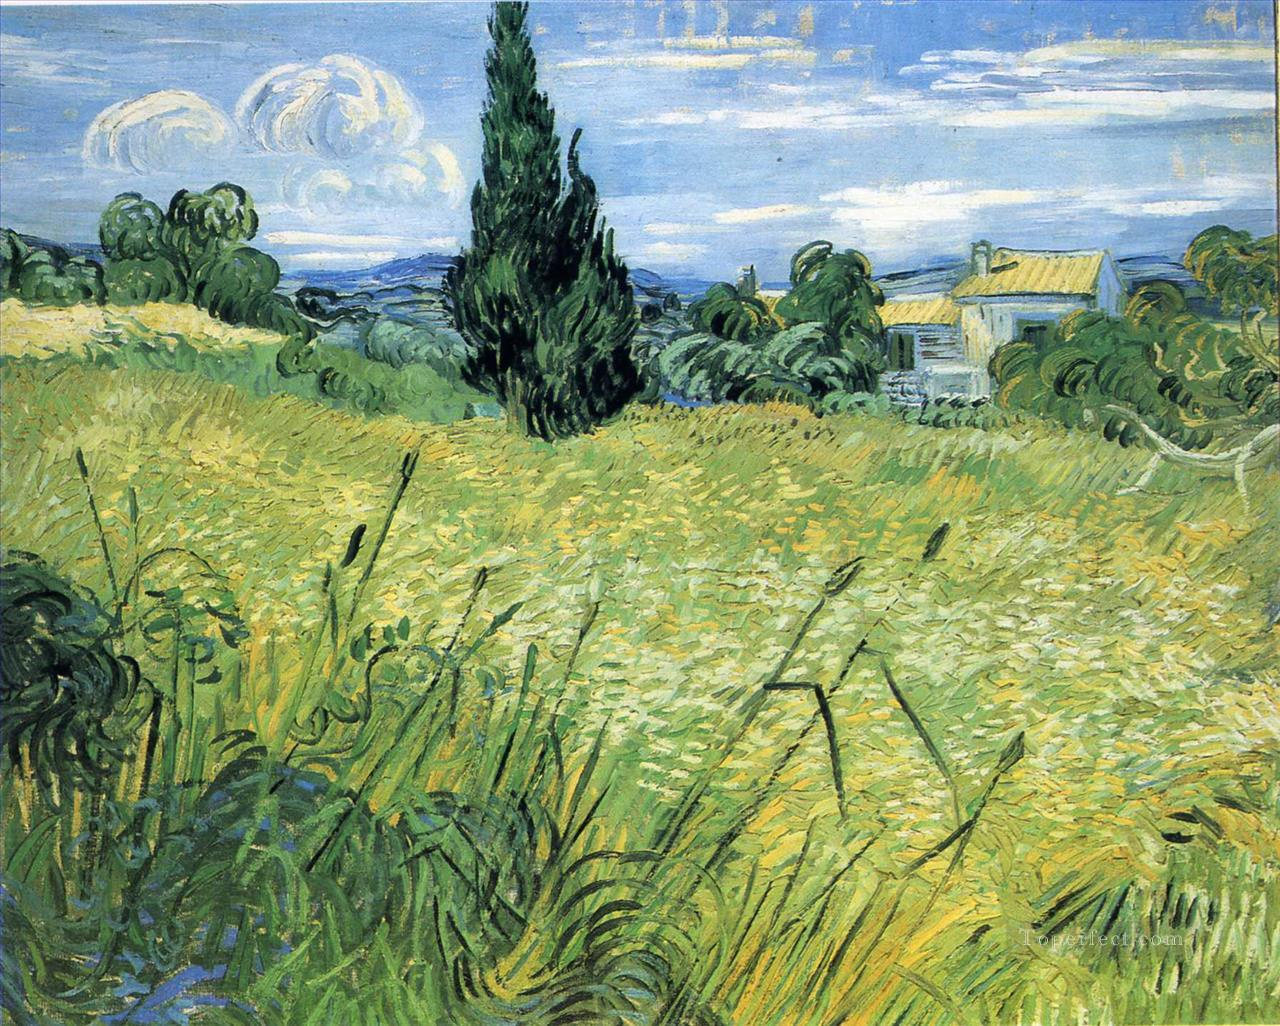 an analysis of the painting wheat field with cypresses by vincent van gogh Cypresses: techniques influenced by vincent van  vincent van gogh, wheat field with cypresses,  tree are mimicked in van gogh's paintings.